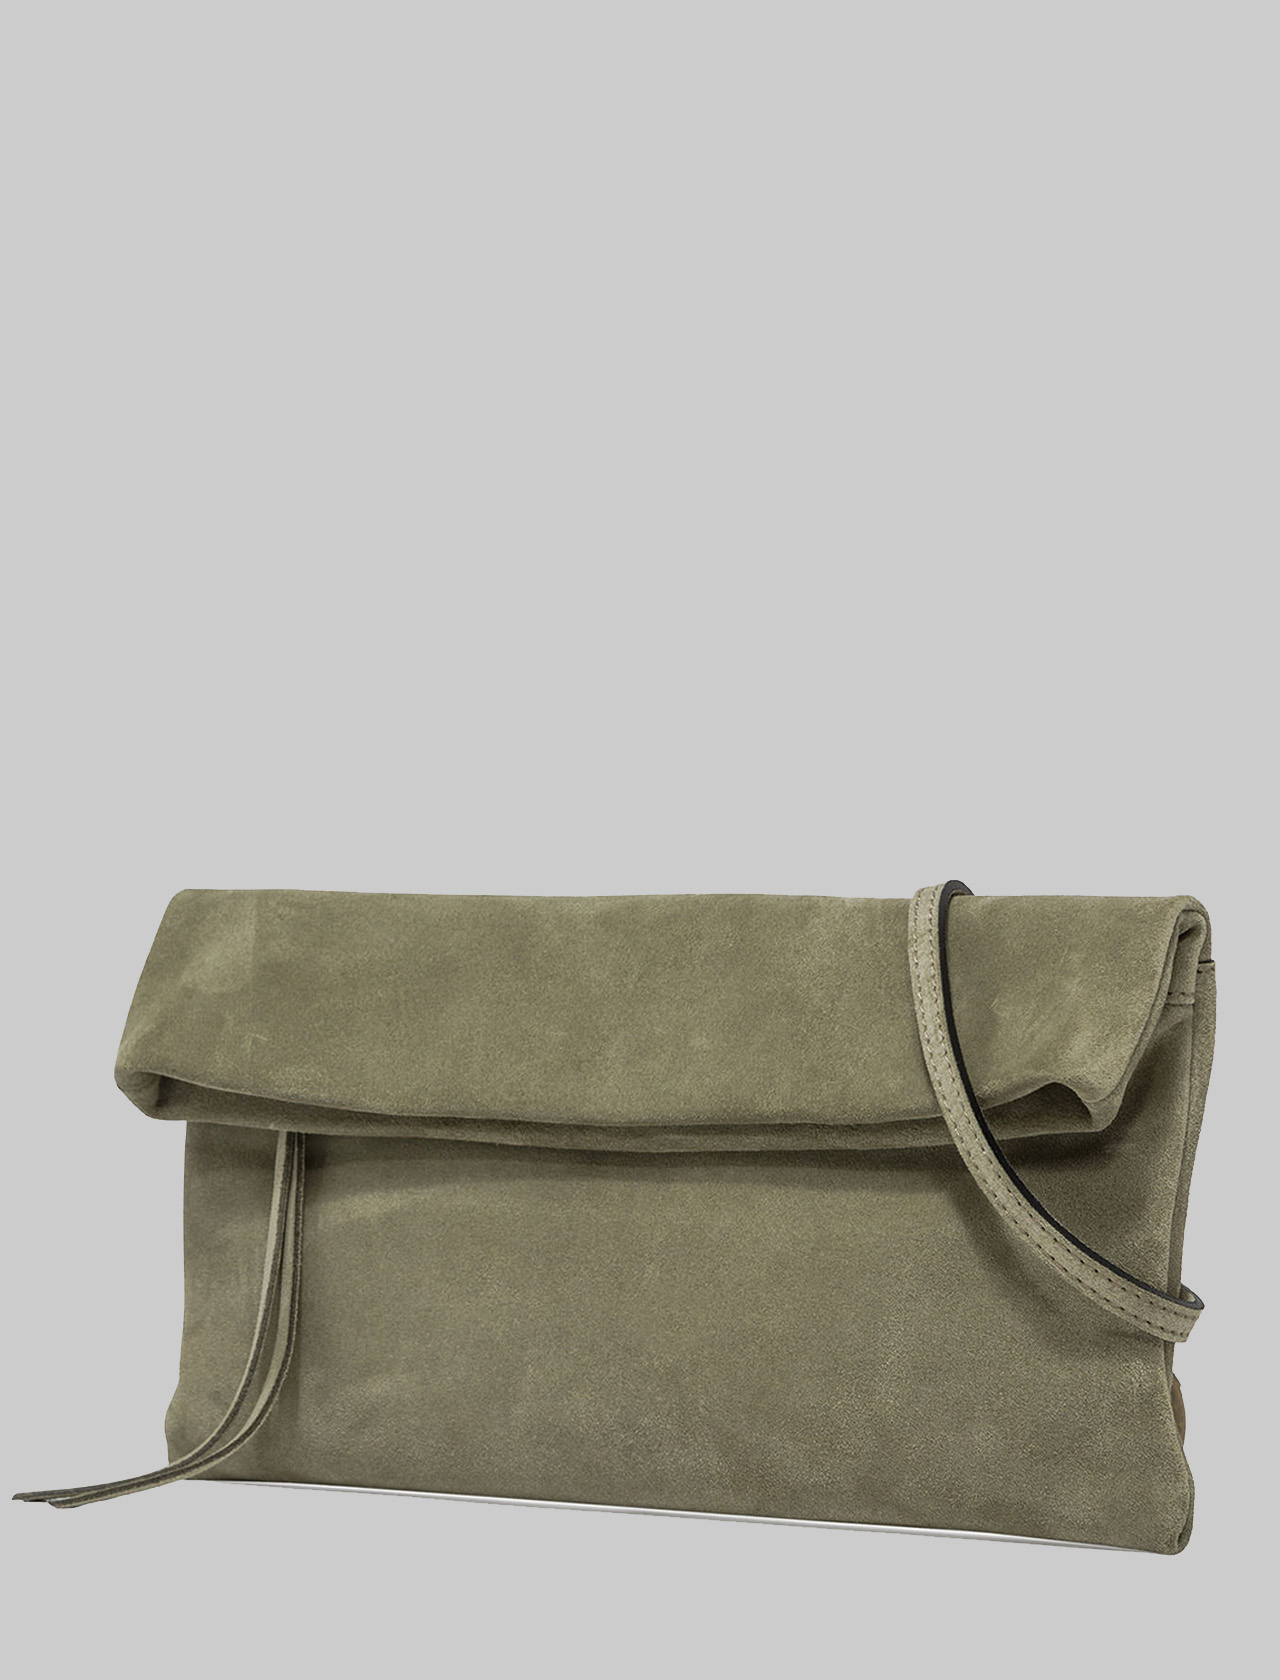 Cherry Women's Clutch Bag In Green Suede With Tone Removable Shoulder Strap Gianni Chiarini | Bags and backpacks | BS73751367